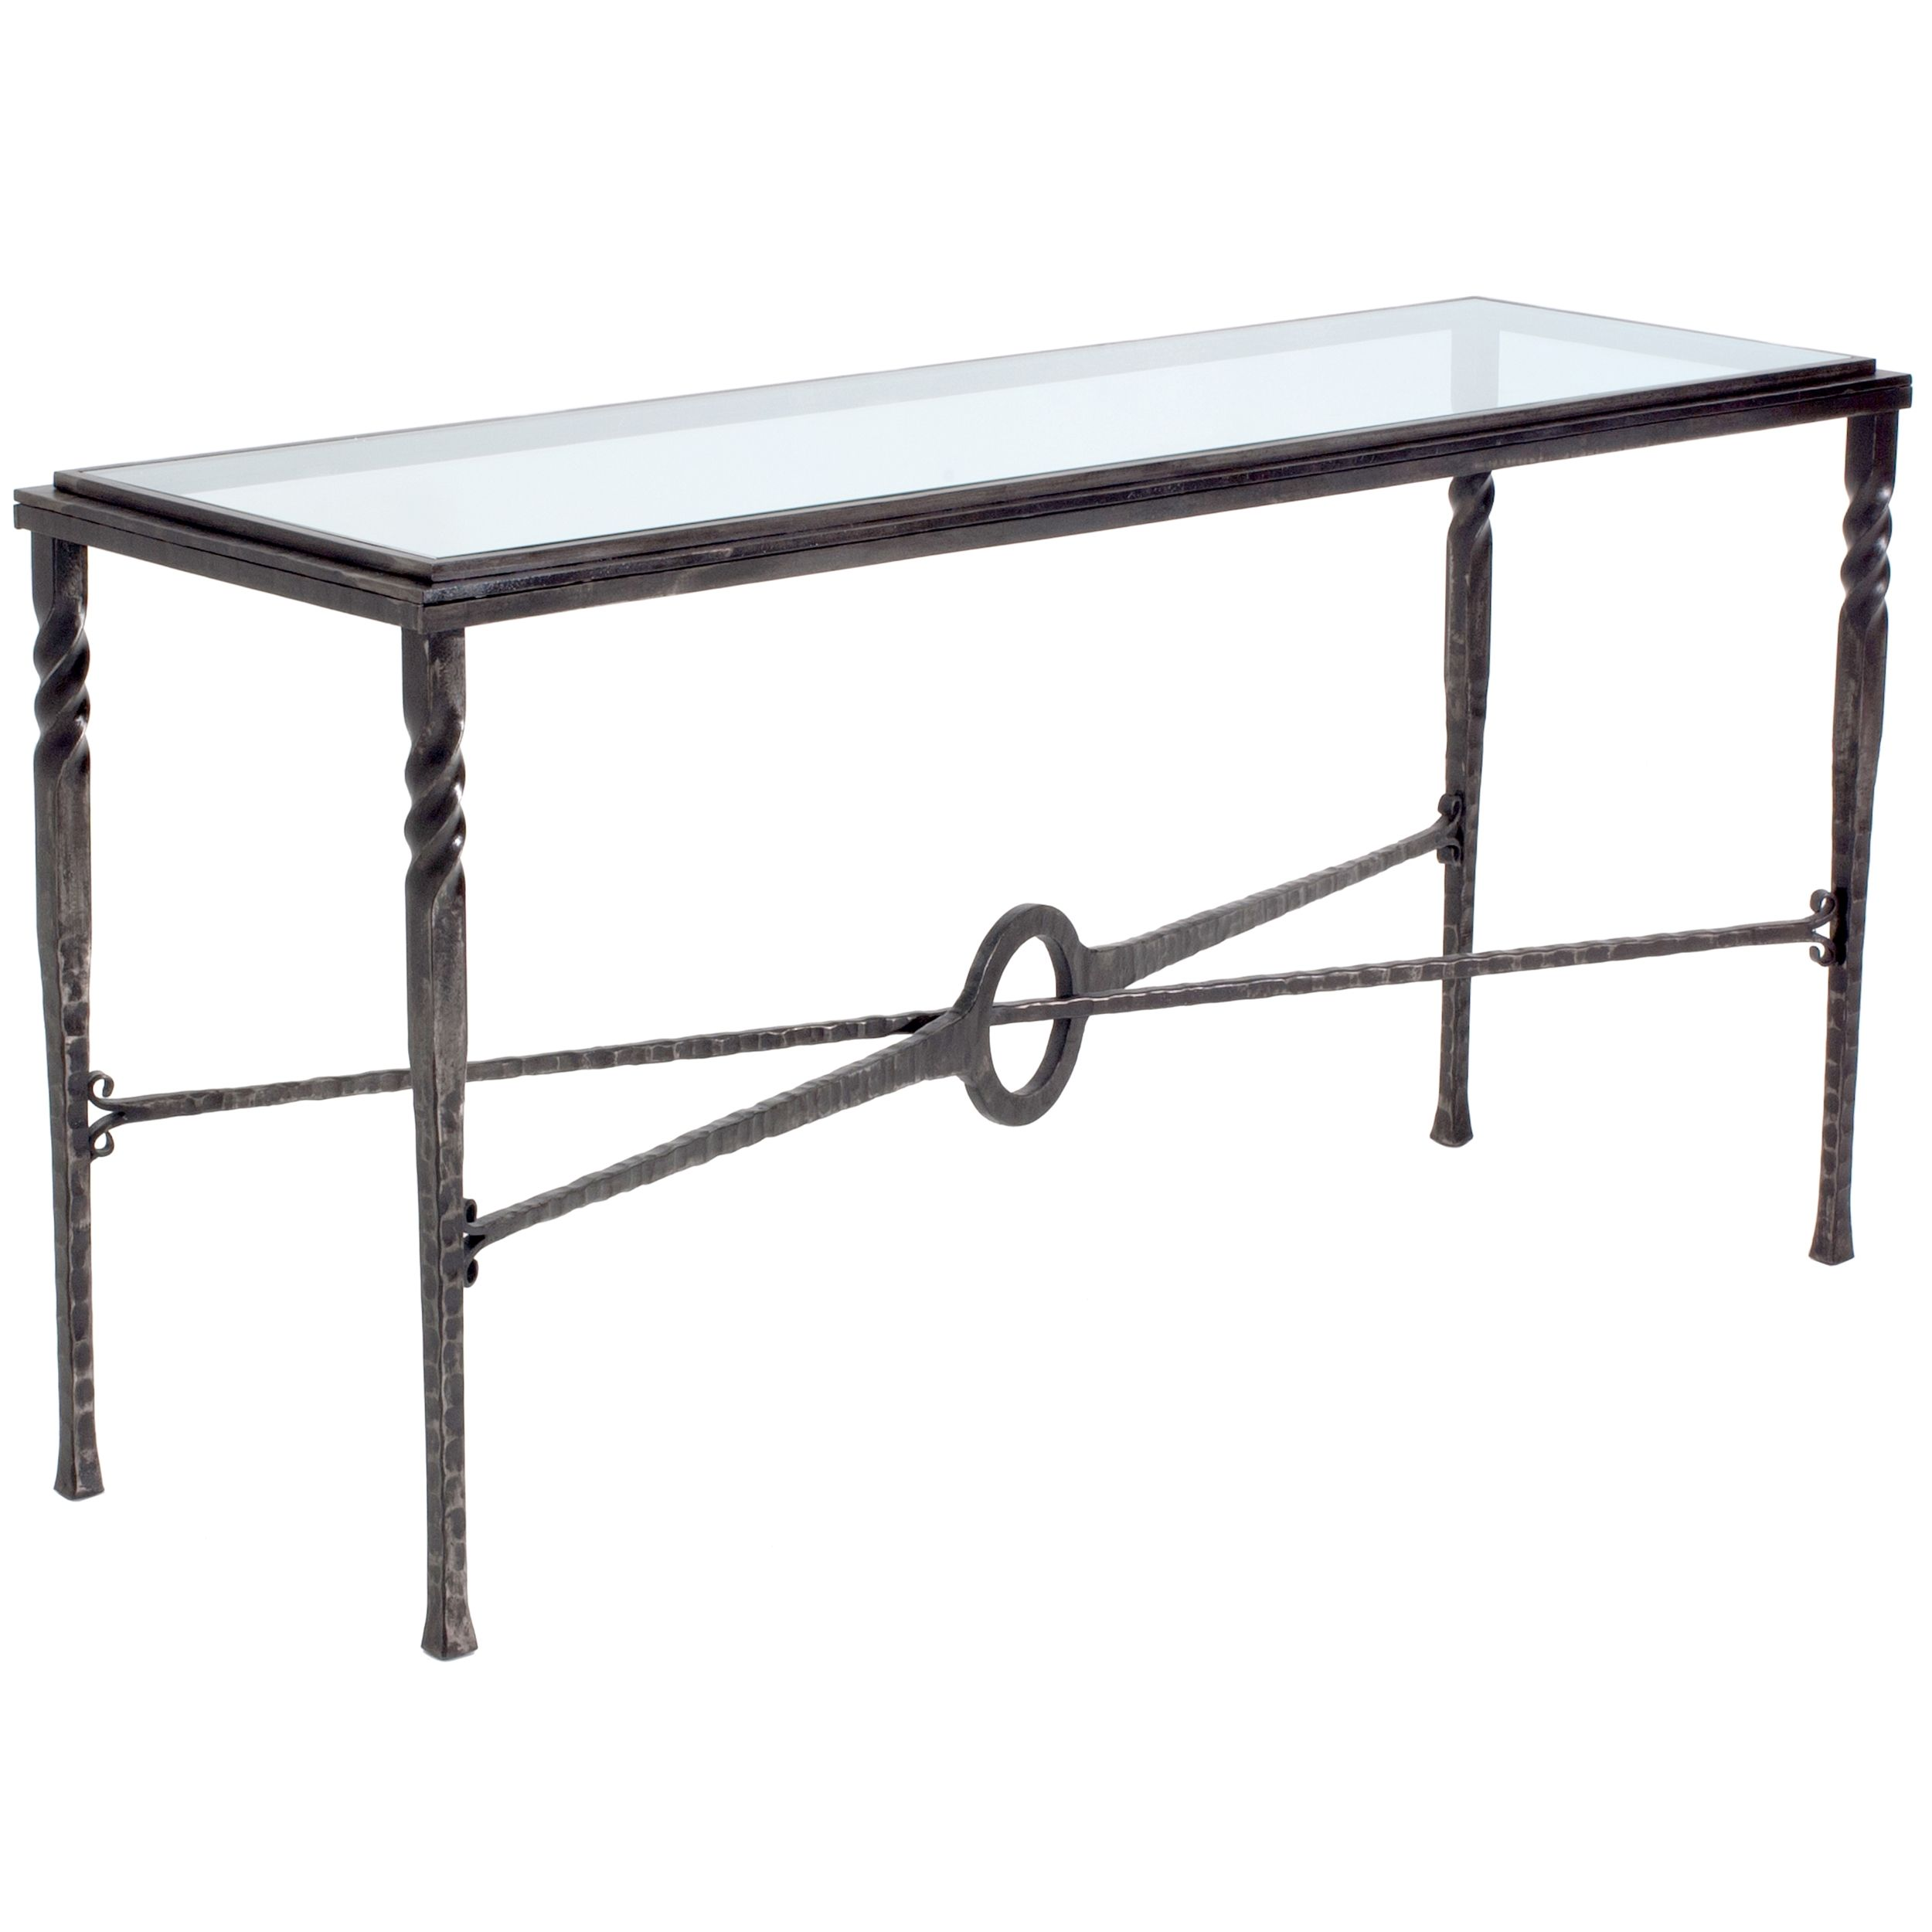 Cool Wrought Iron Sofa Table Trend 68 For Living Room